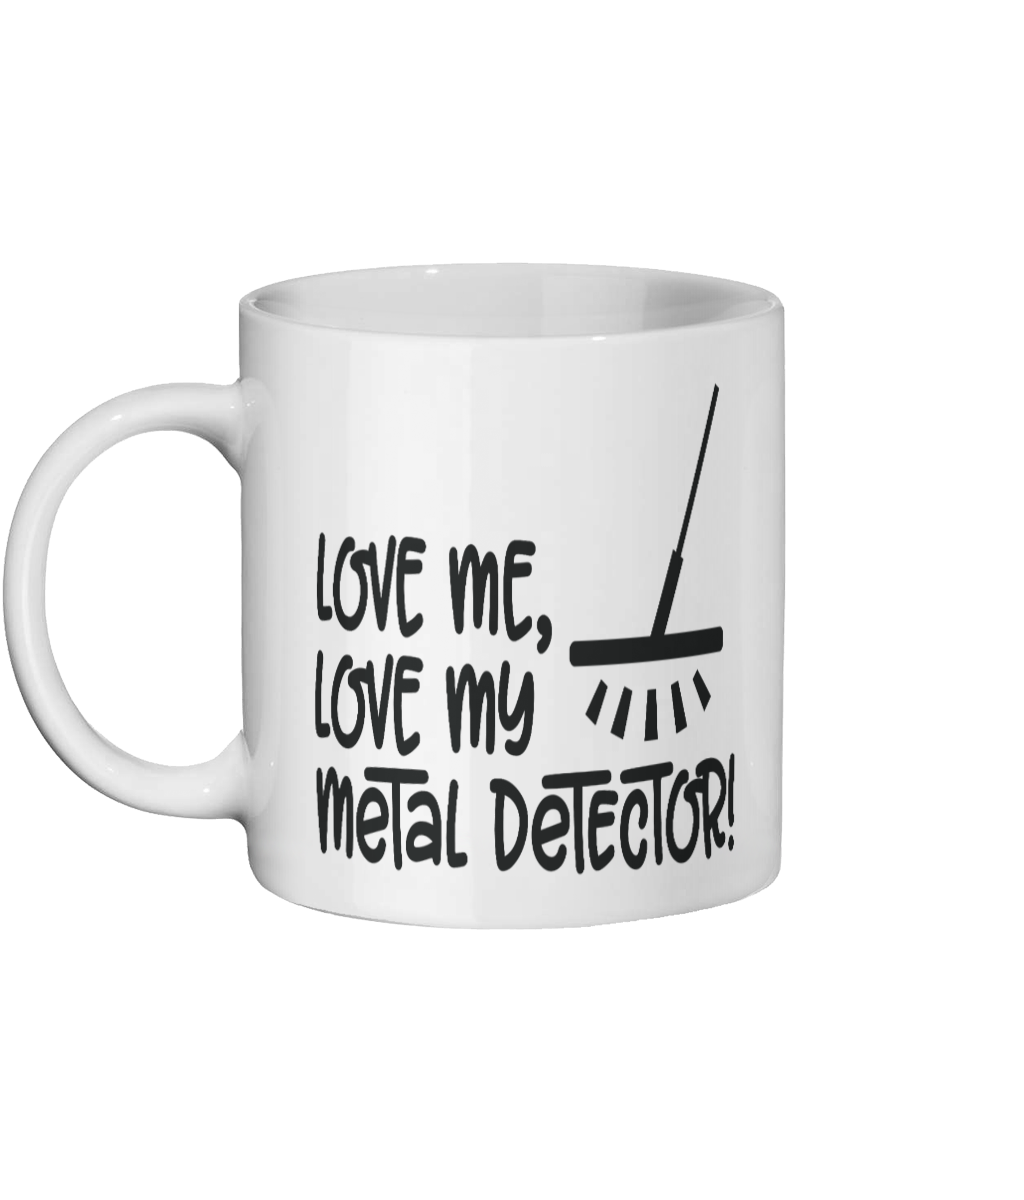 [personalised_mug]Love My Metal Detector-Customised Coffee Mug - status mugs